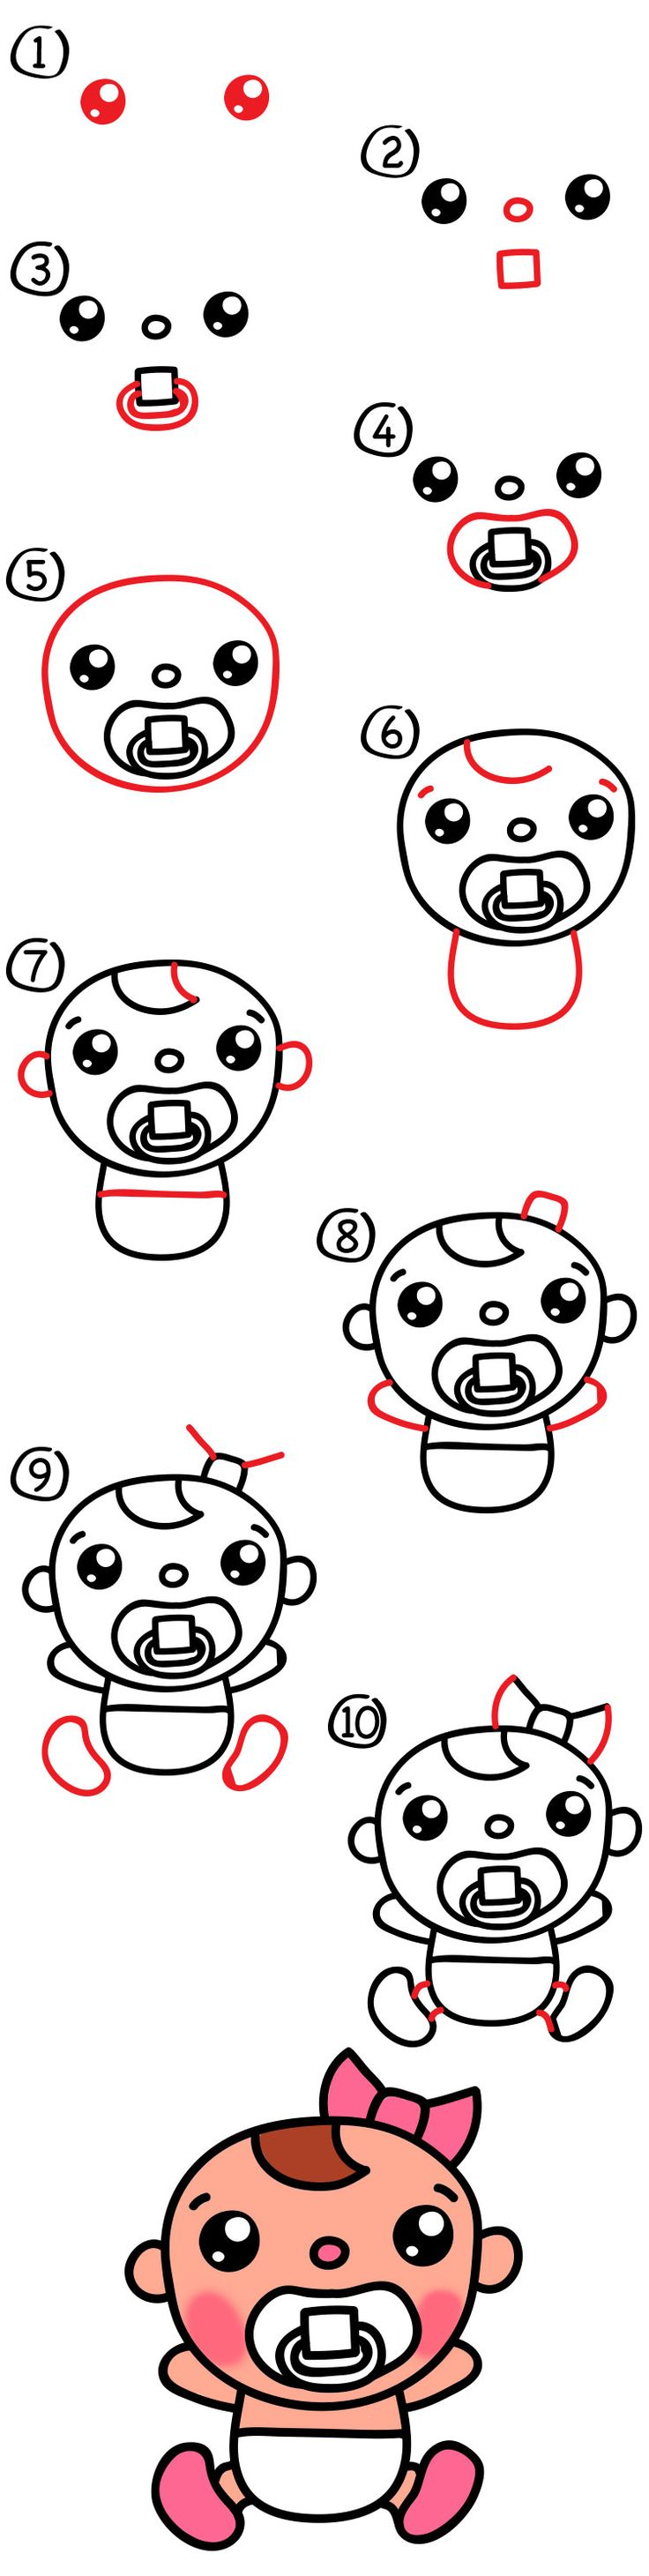 Pick up those markers and follow along with us. Today we're learning how to draw a cute cartoon baby. More specifically we're going to draw baby Olive. If your kids want to draw Olive with us, great! But, they could also change their drawing by using their own creativity and add different details. Maybe their …